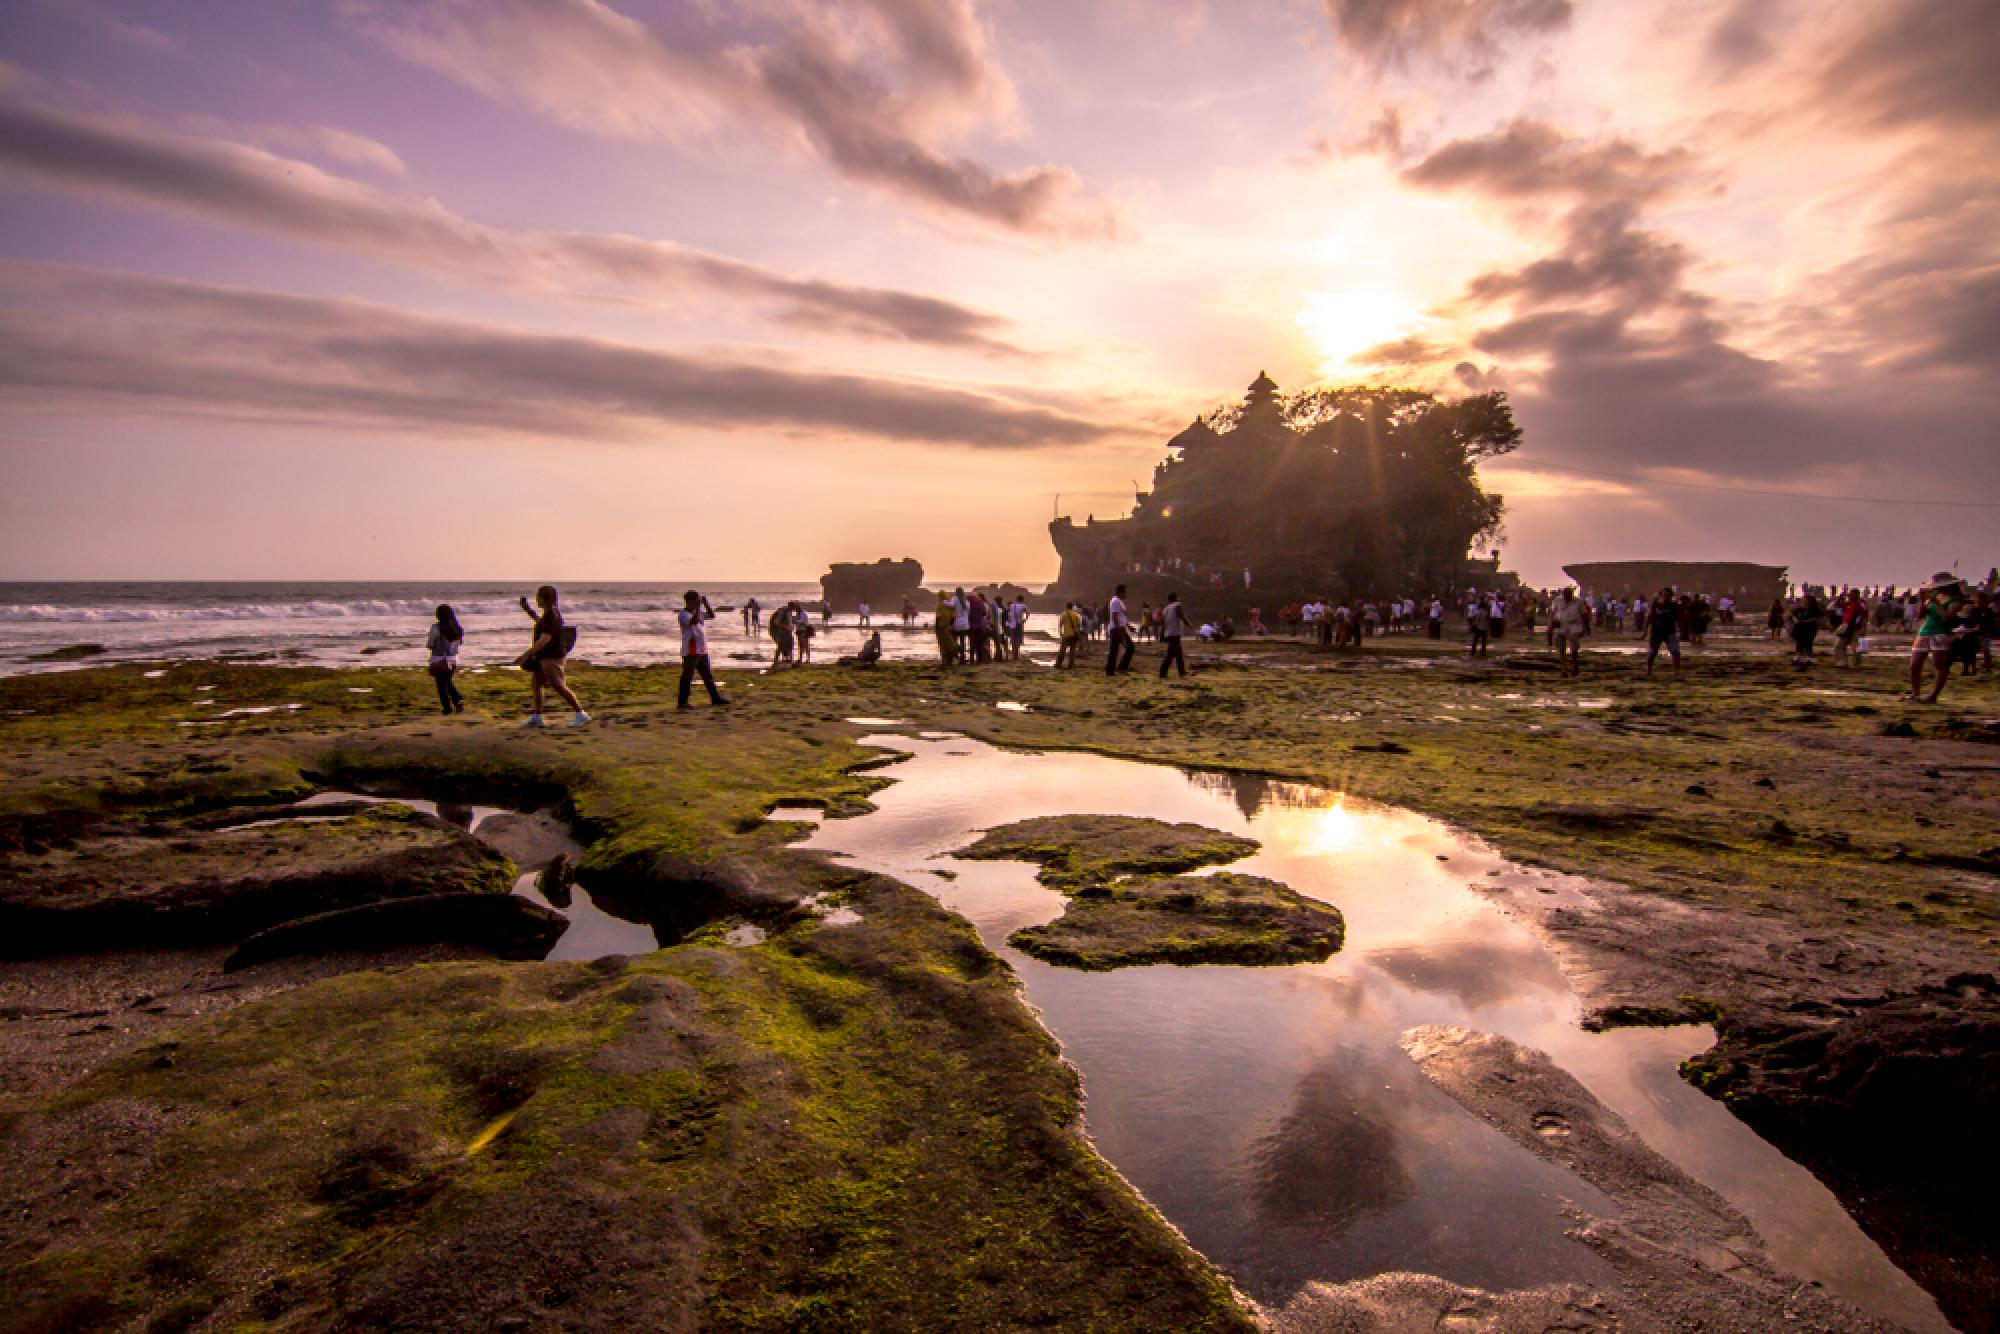 Morning Adventure at Tanah Lot